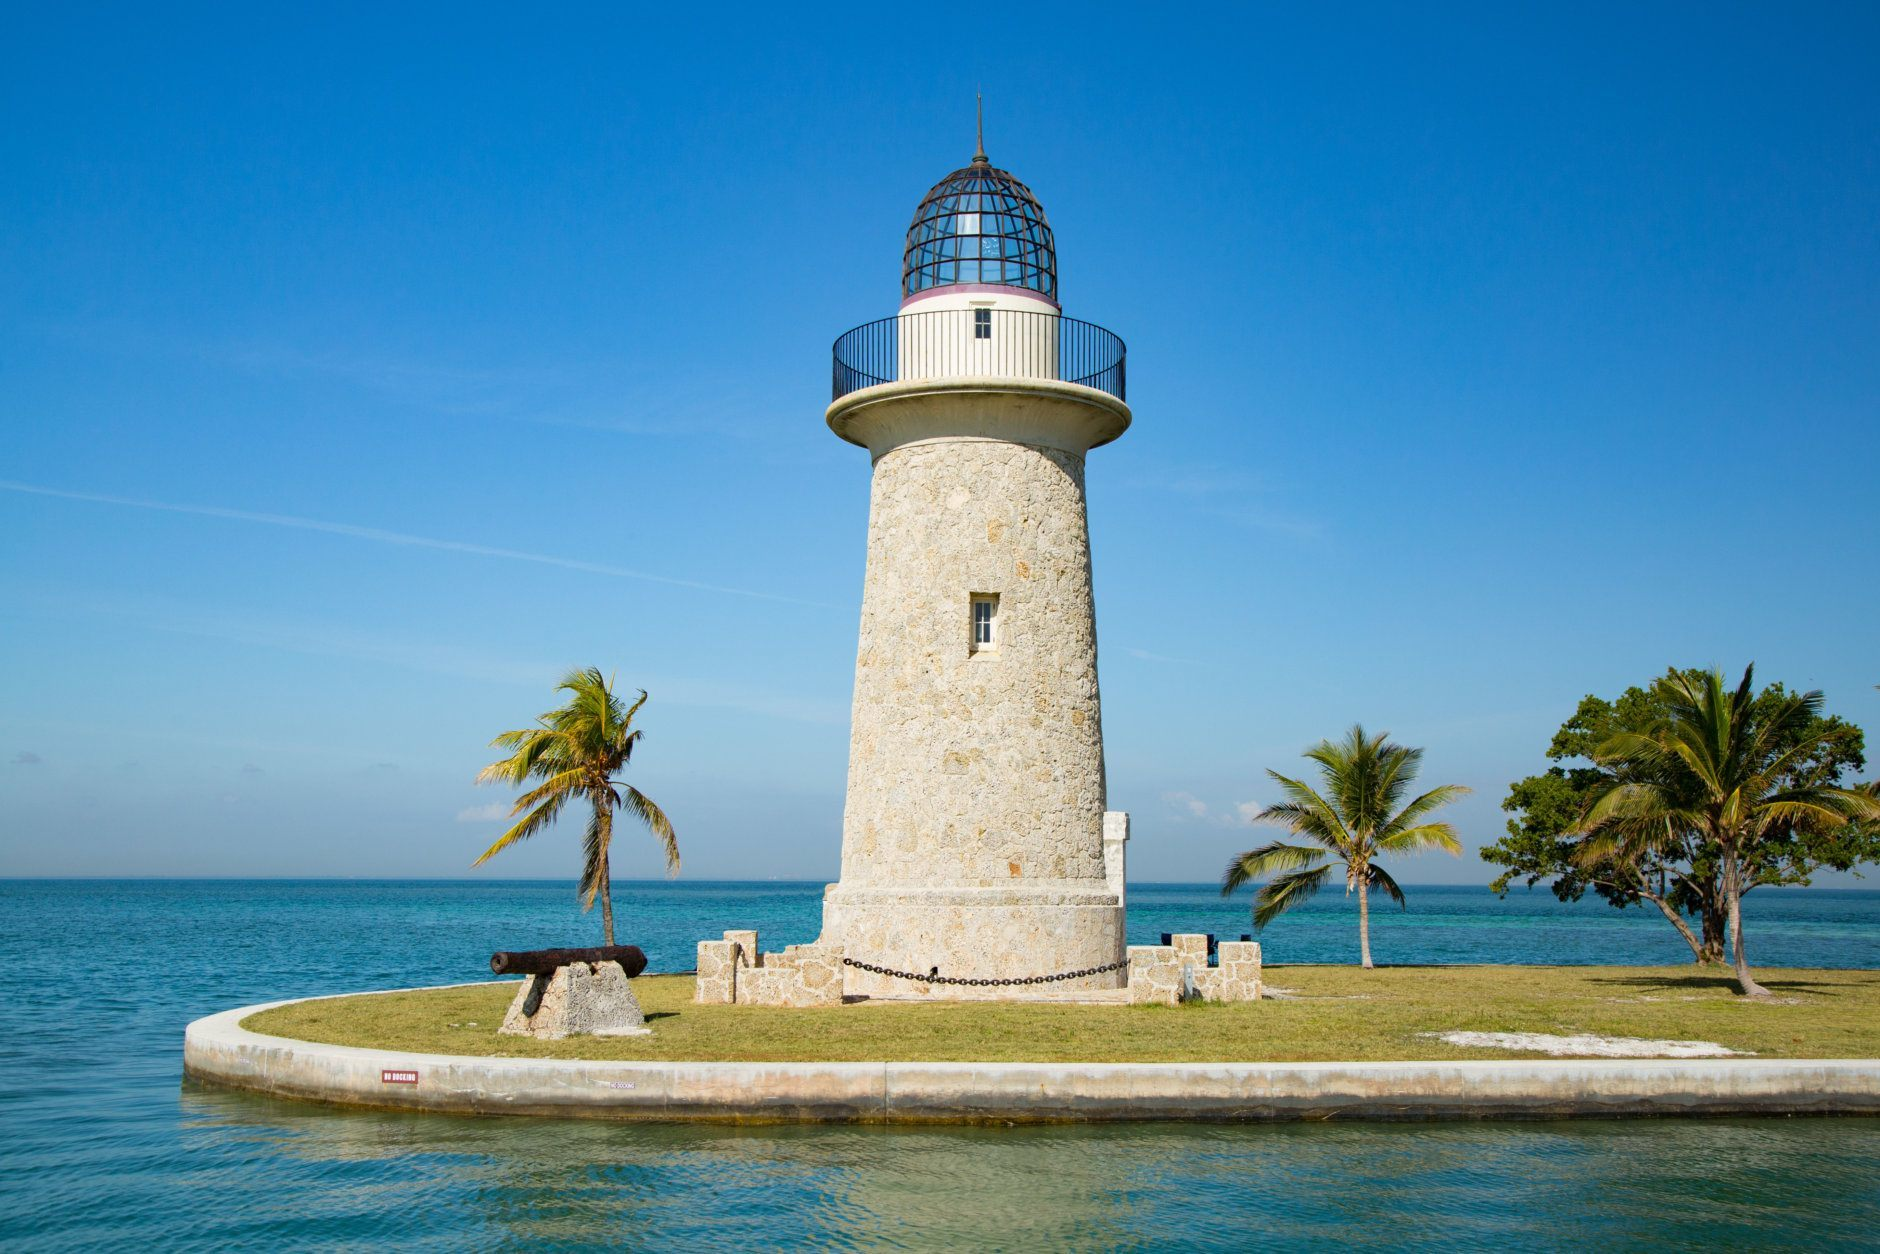 Boca Chita Lighthouse in Biscayne National Park is a historical and visual gem